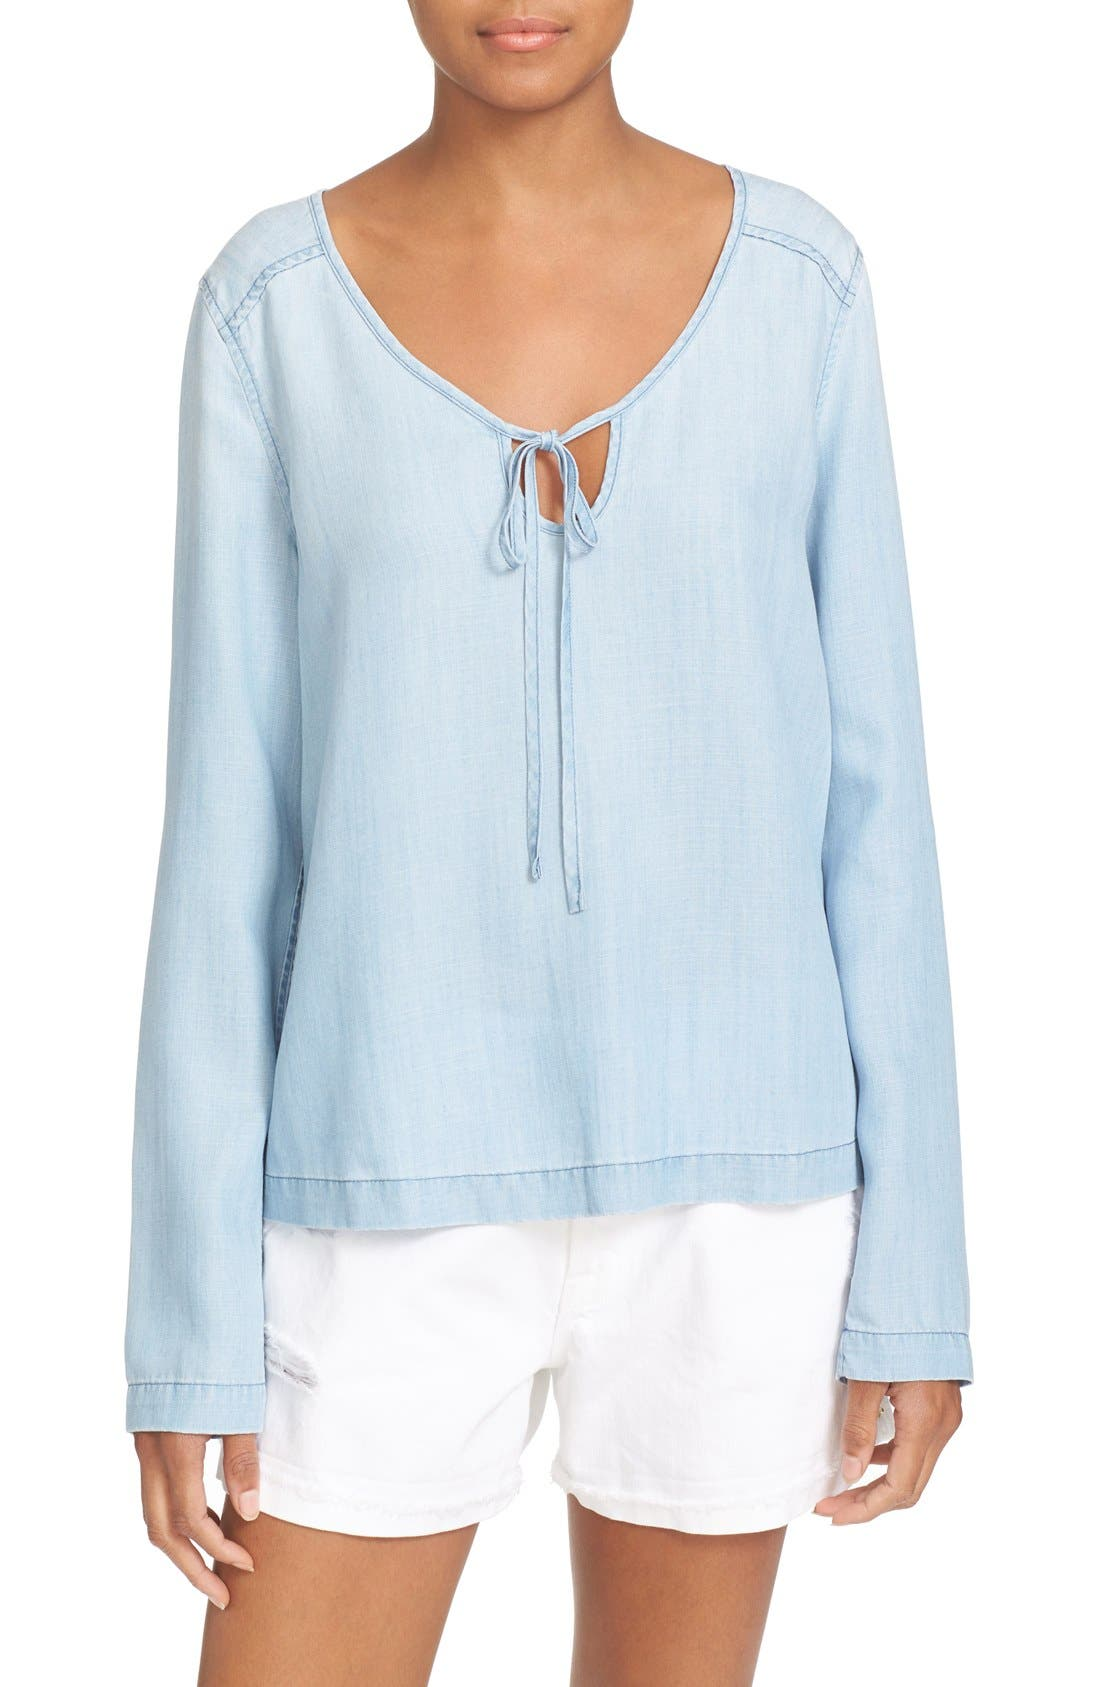 Alternate Image 1 Selected - FRAME Chambray Blouse